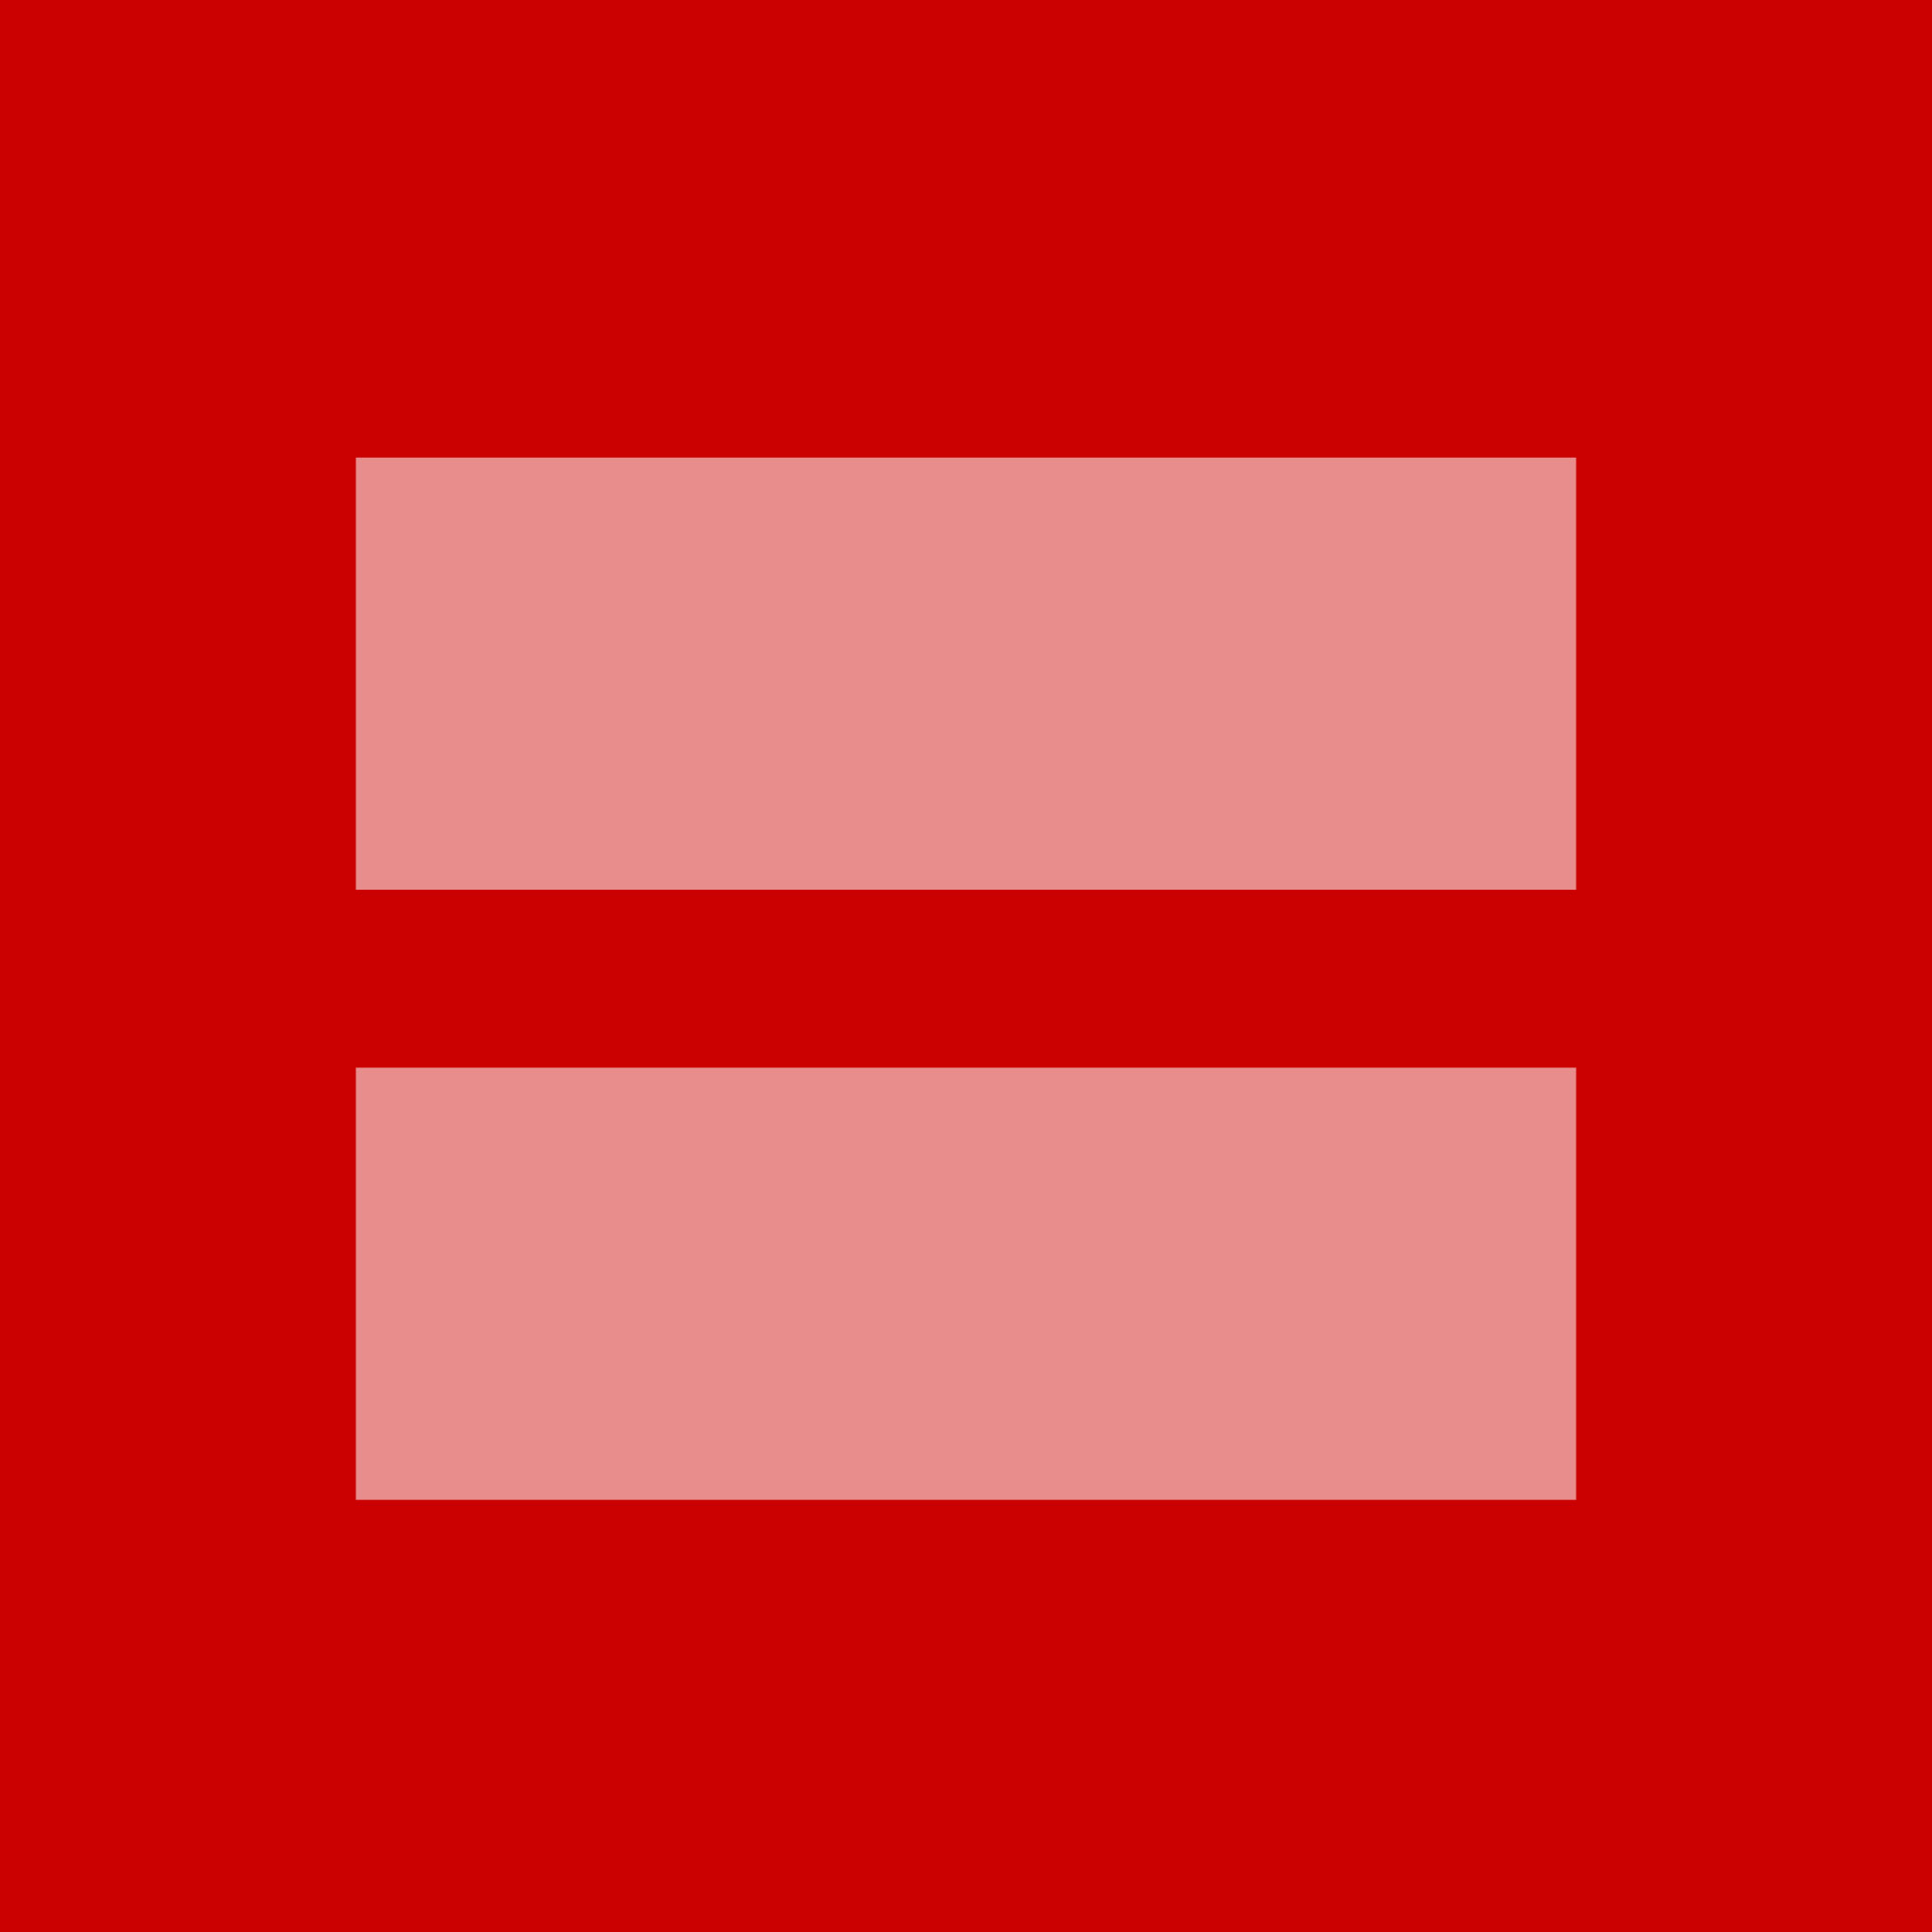 EQUAL RIGHTS, EQUAL RIGHTS?